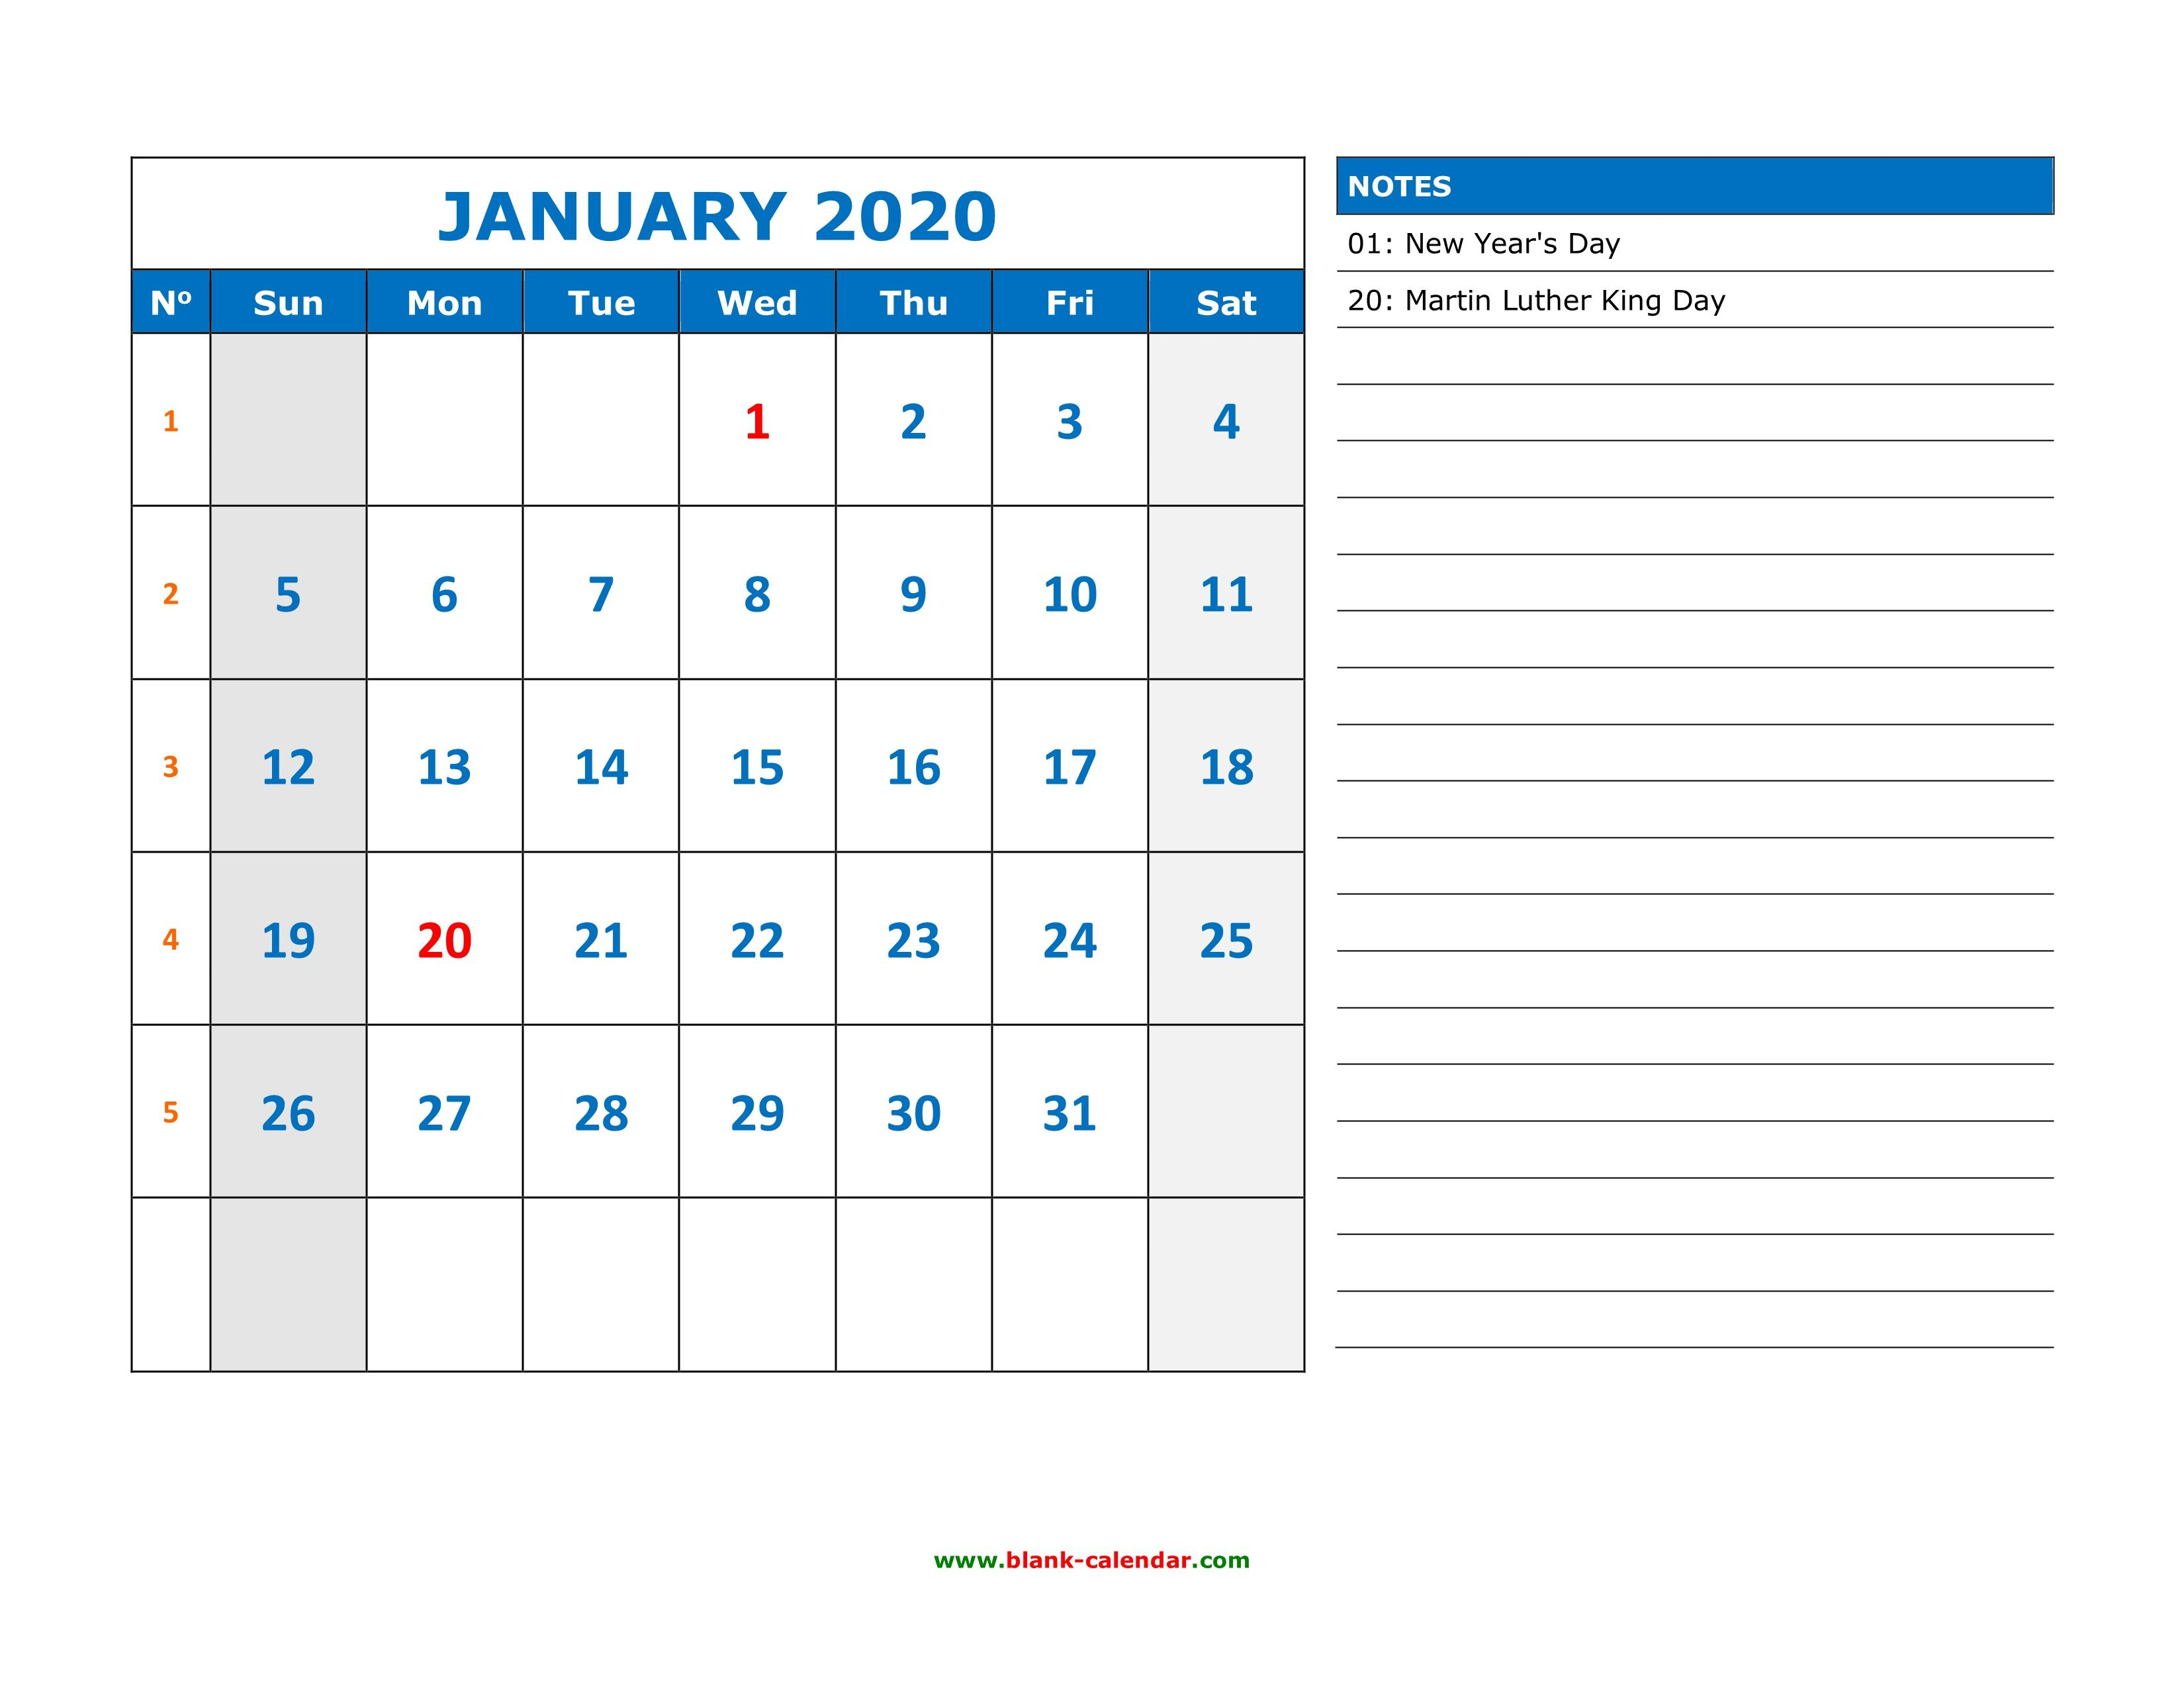 009 Imposing Monthly Appointment Calendar Template Photo  Schedule Excel Free 2020Full